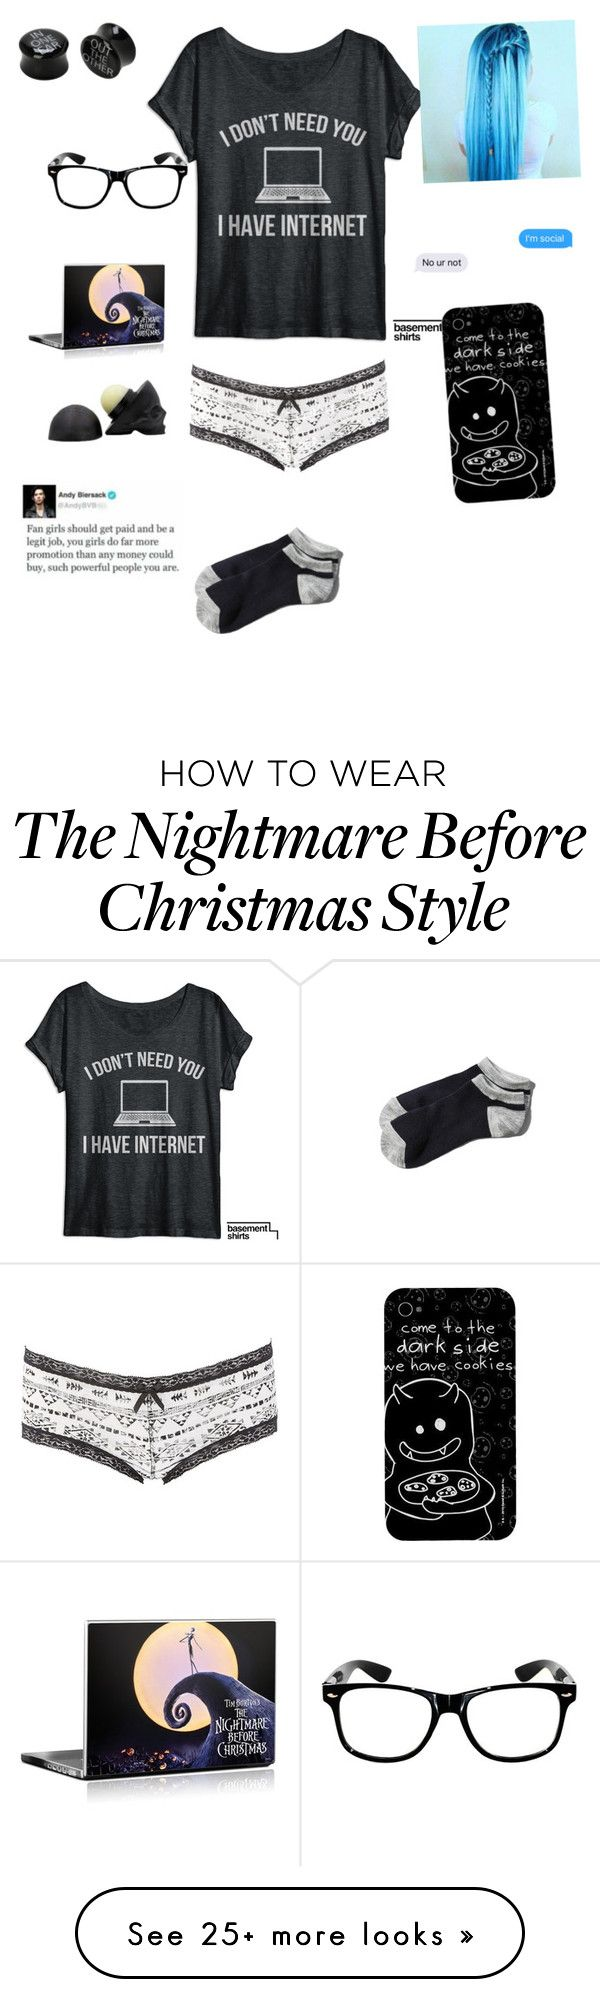 """Untitled #183"" by kyleruniverse on Polyvore featuring Abercrombie & Fitch, Charlotte Russe, women's clothing, women, female, woman, misses and juniors"